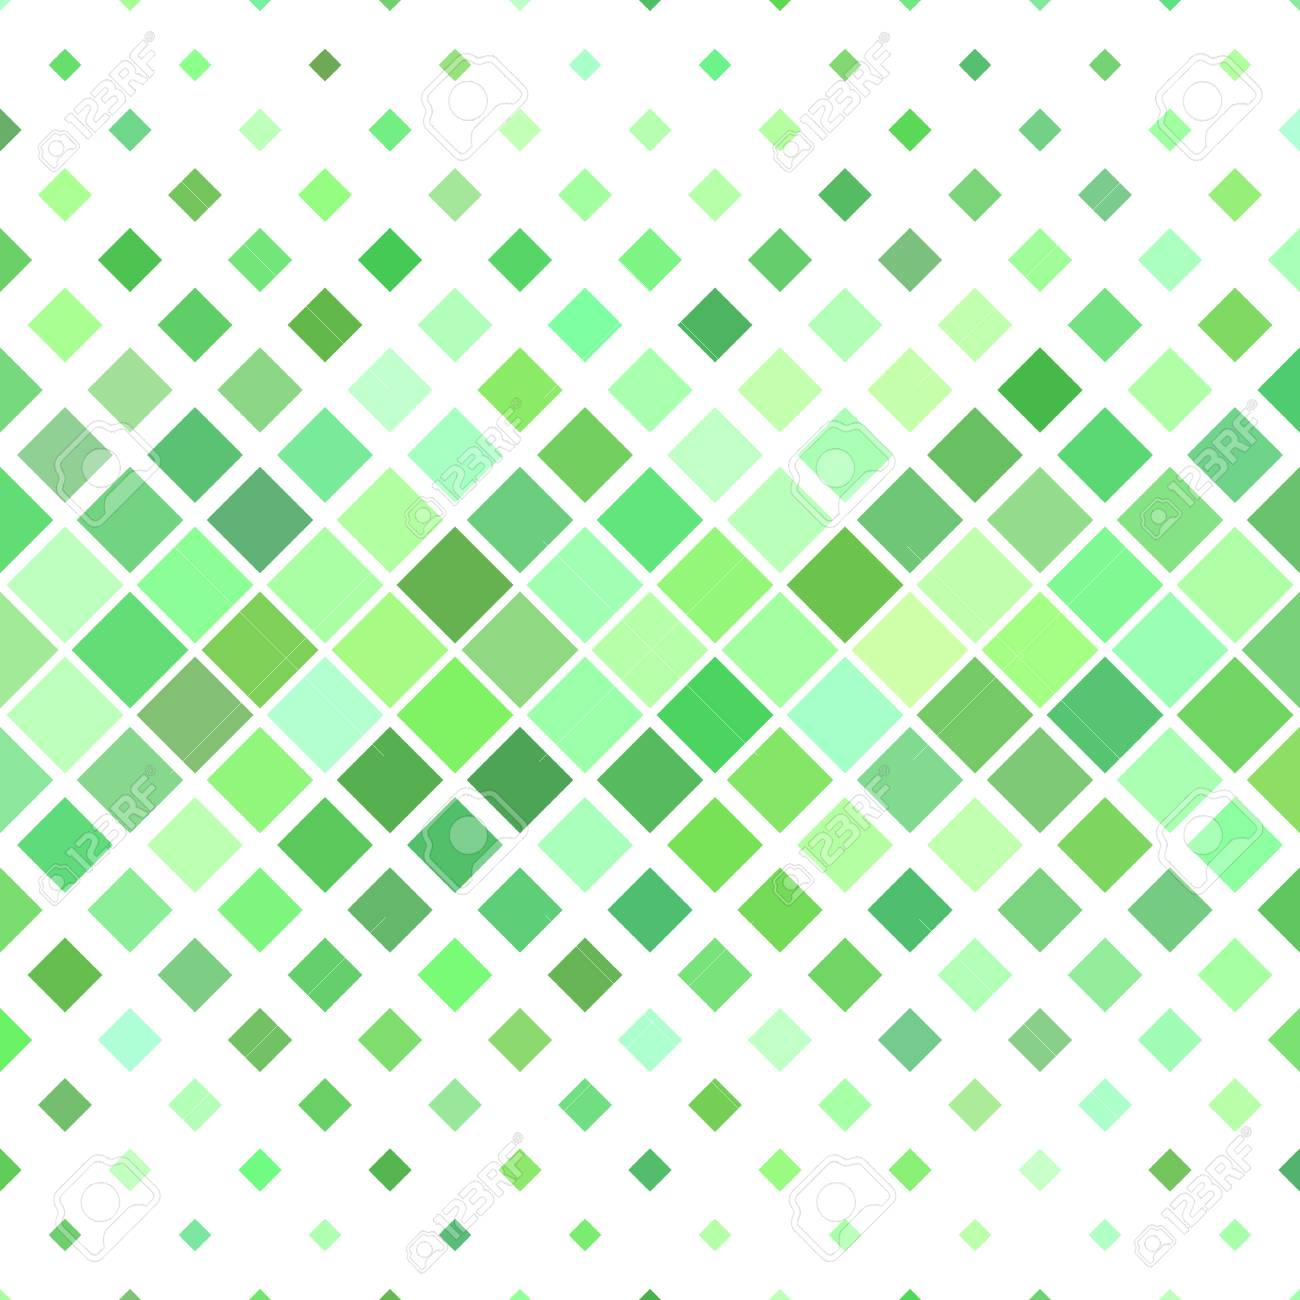 Green abstract square pattern background geometric vector illustration